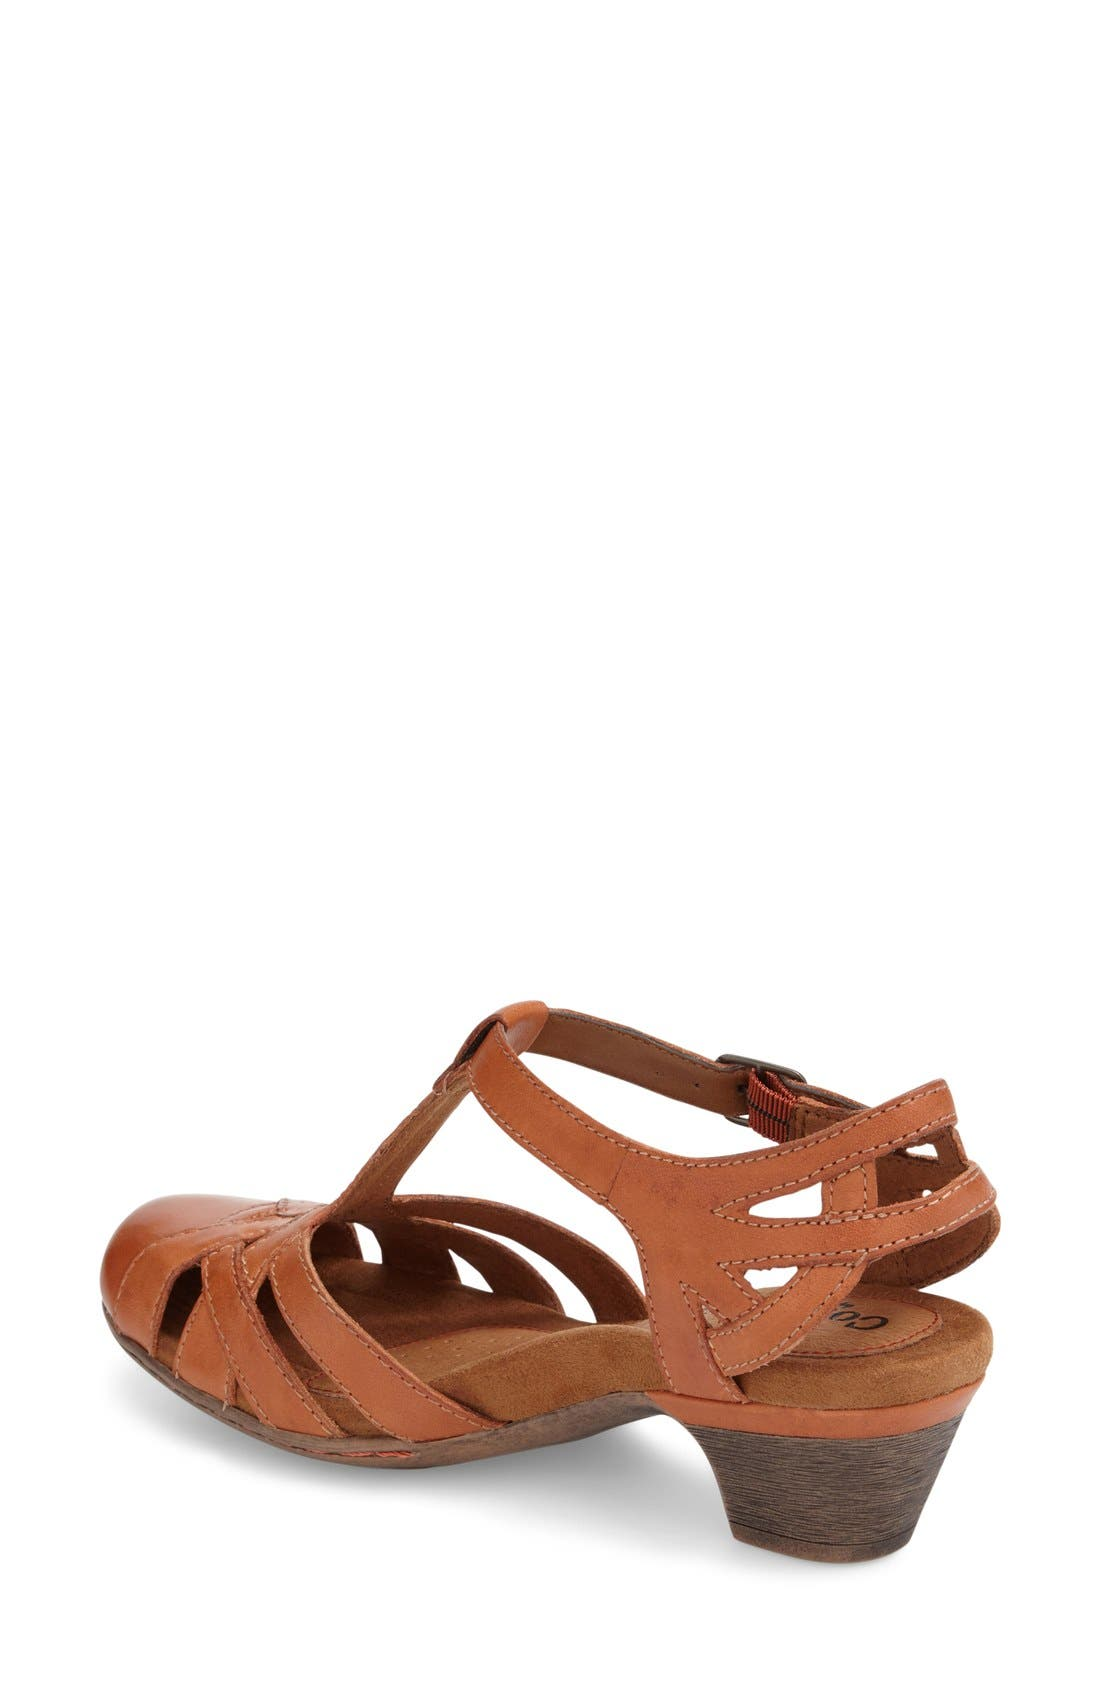 'Aubrey' Sandal,                             Alternate thumbnail 47, color,